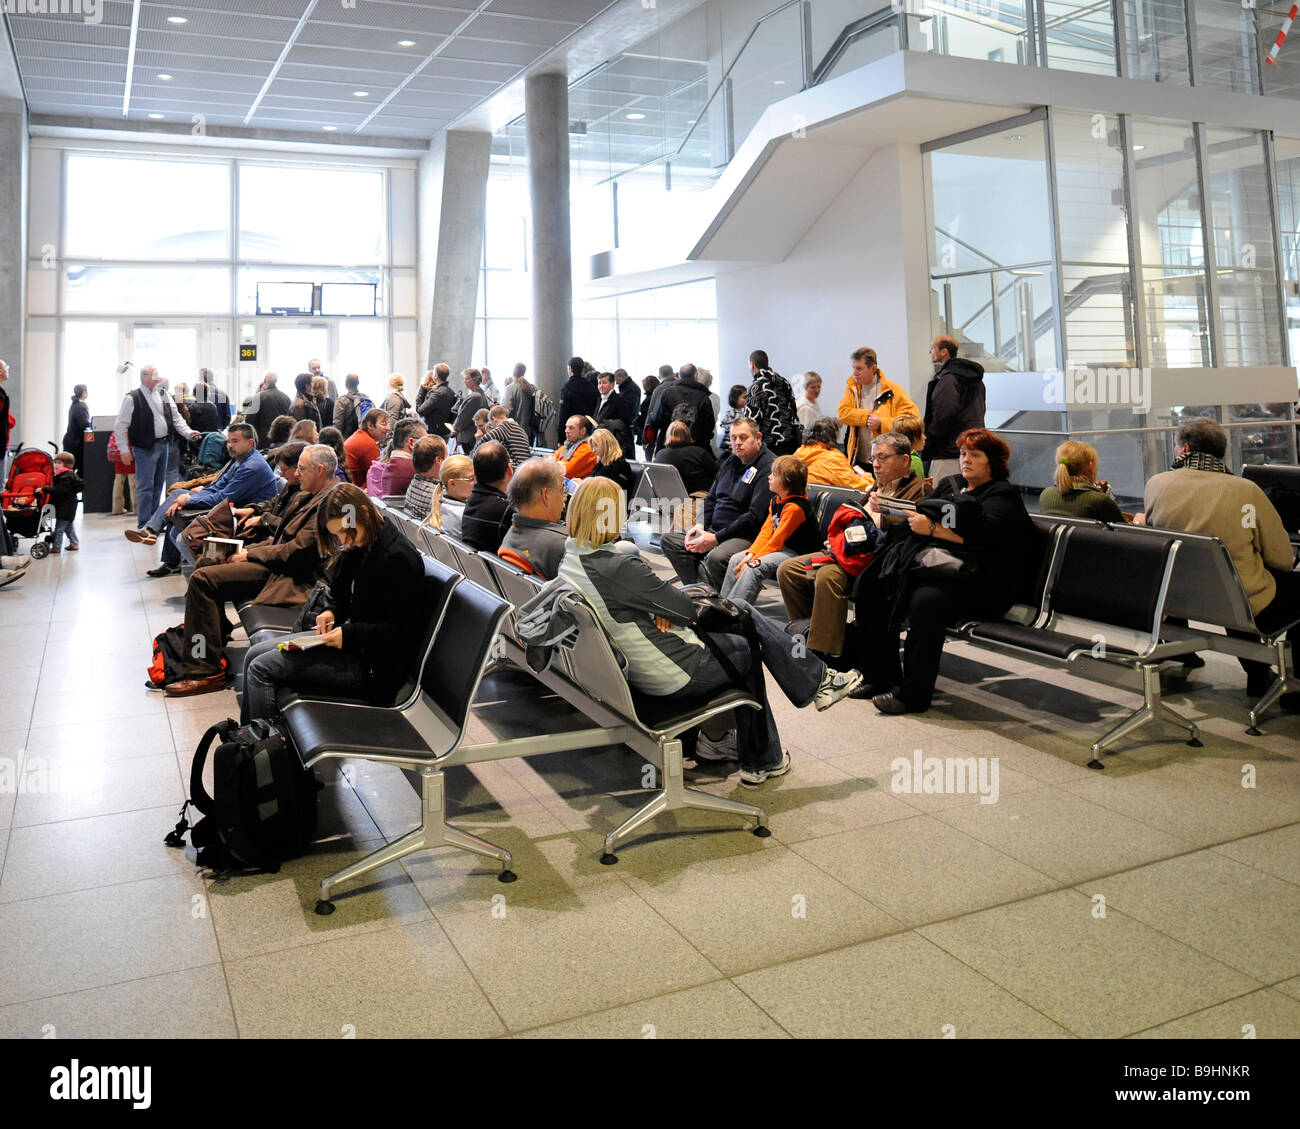 Airline passengers in the waiting area at a boarding gate, Stuttgart Airport, Baden-Wuerttemberg, Germany, Europe - Stock Image